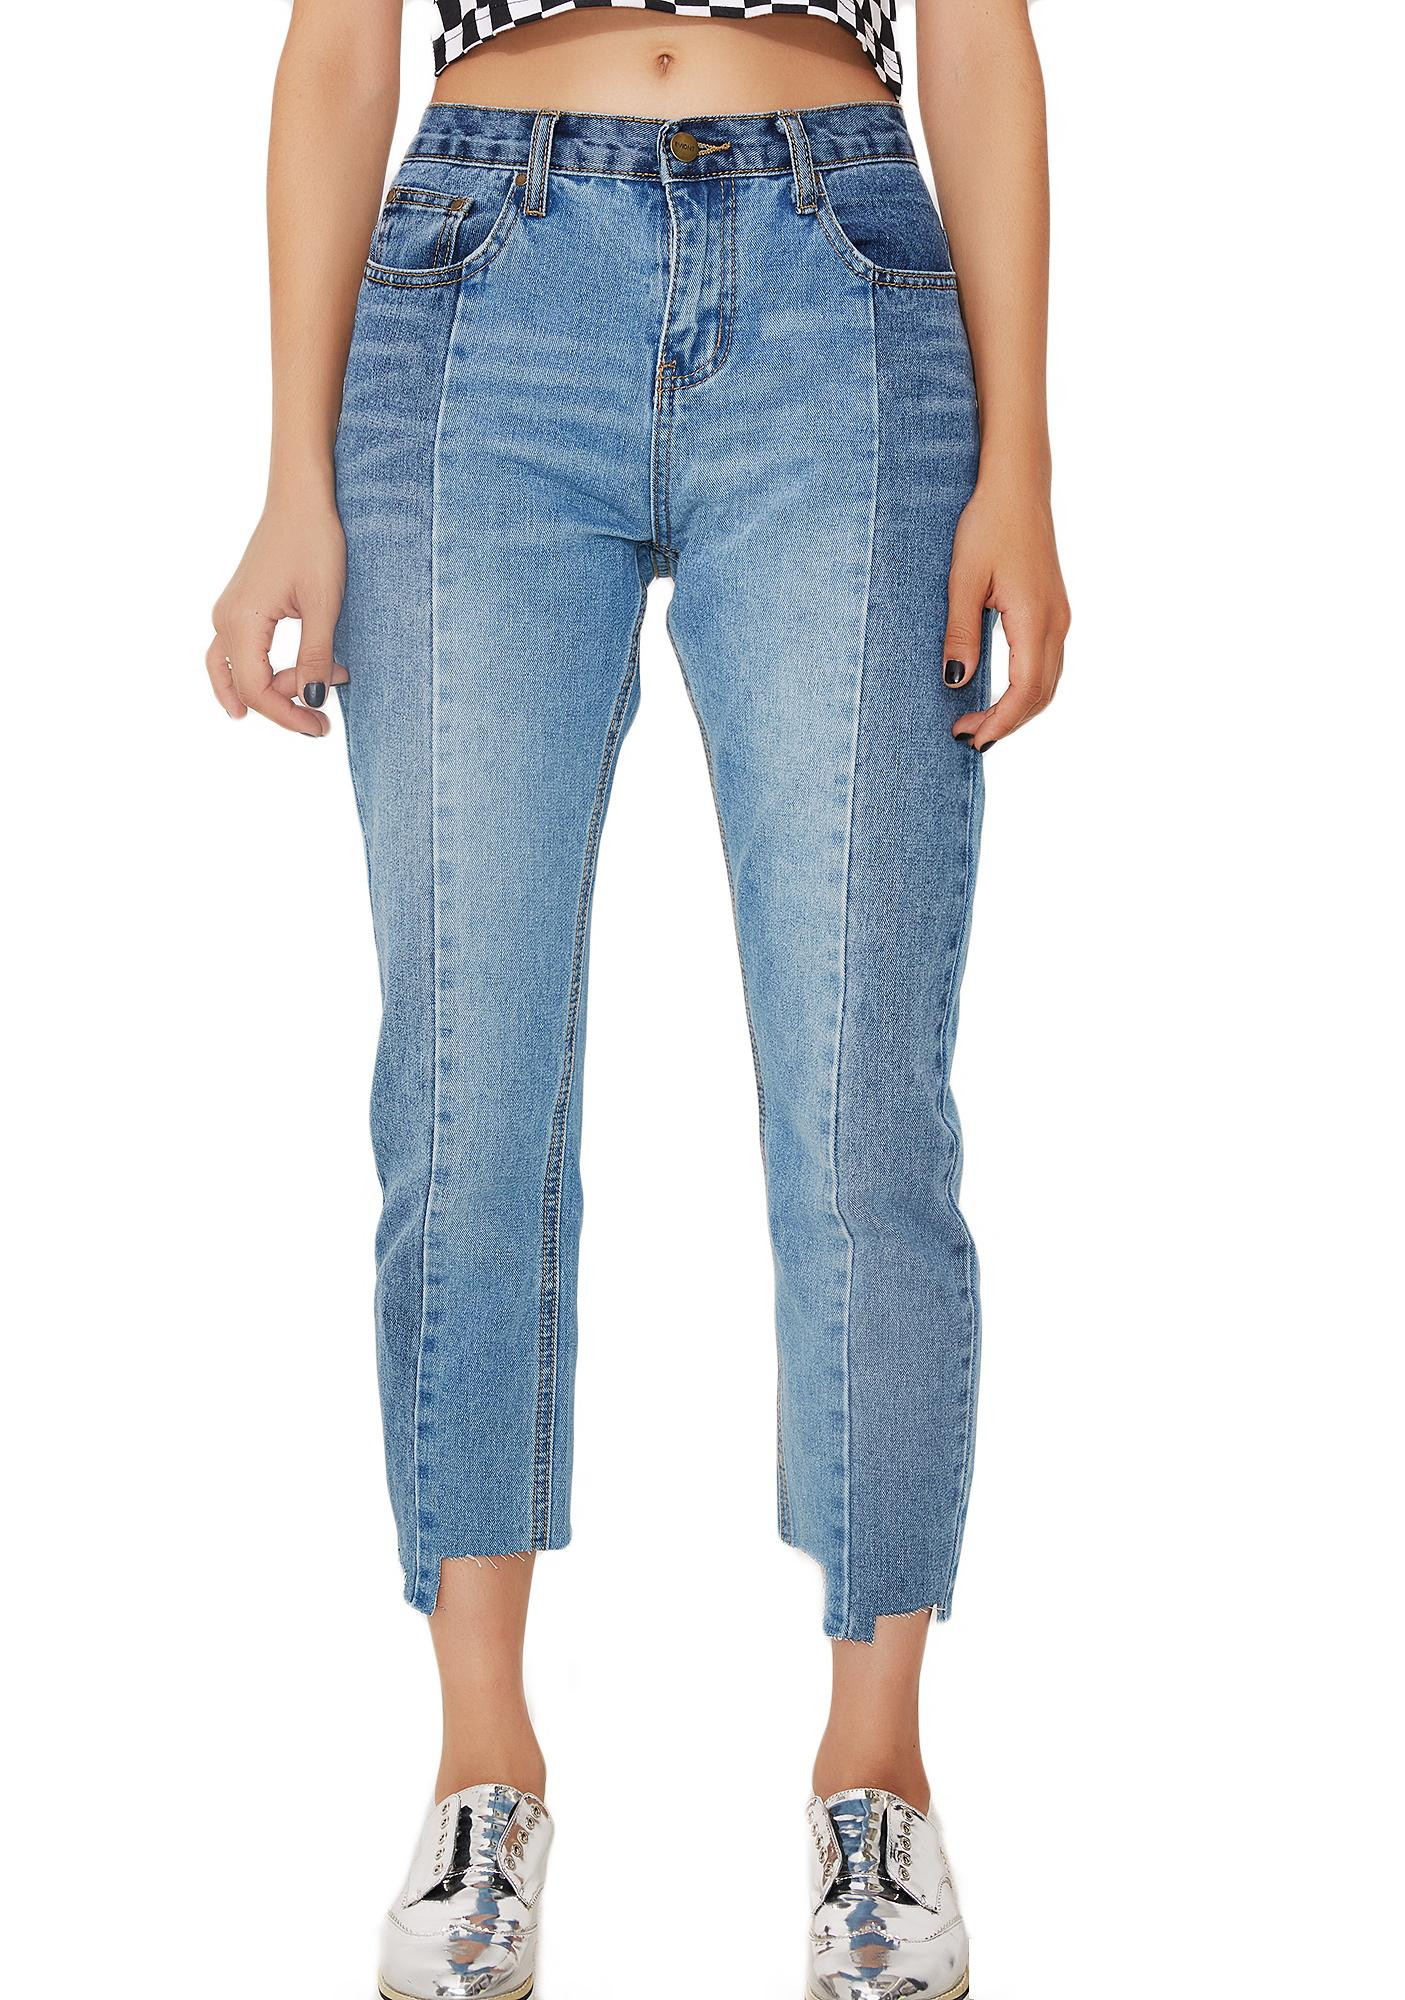 EVIDNT Two Tone Jeans